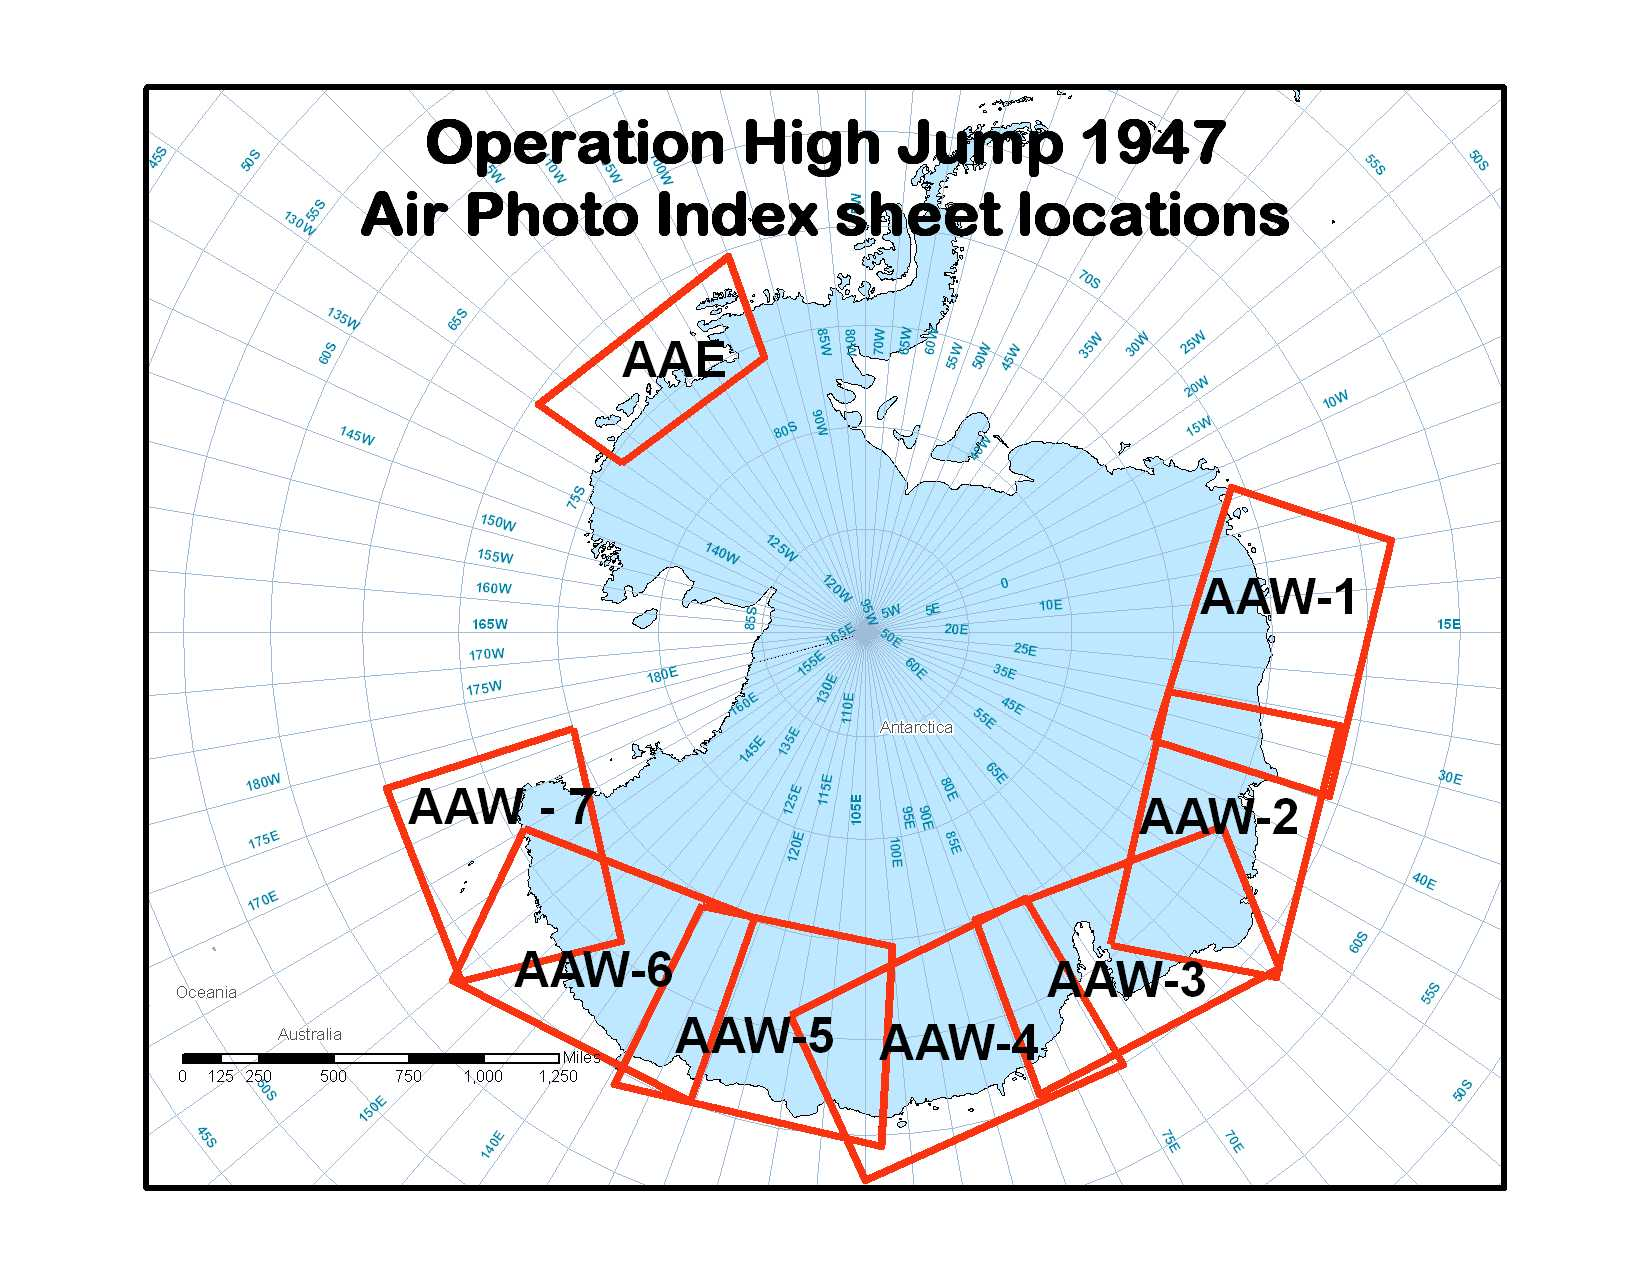 Operation Highjump airphoto index map